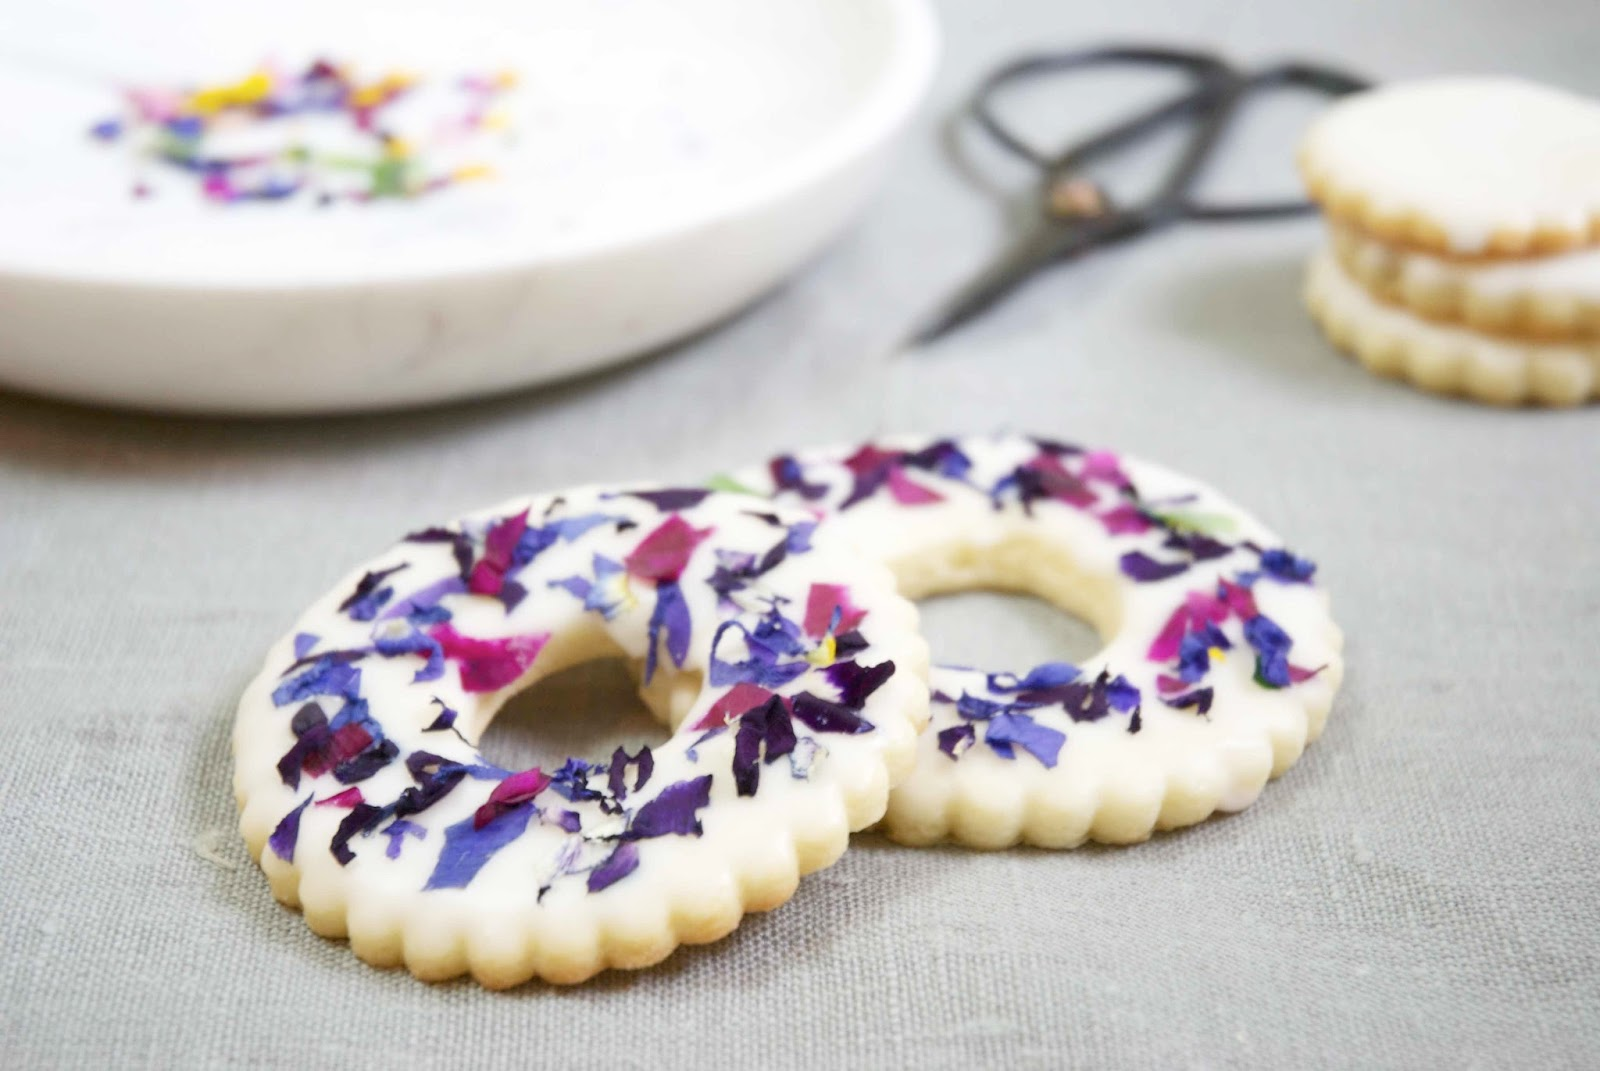 Shayda campbell edible flower stained glass cookies anyway on to the cookies these edible flower stained glass cookies are a fun way to add a bit of summertime colour to your week i hope you like them izmirmasajfo